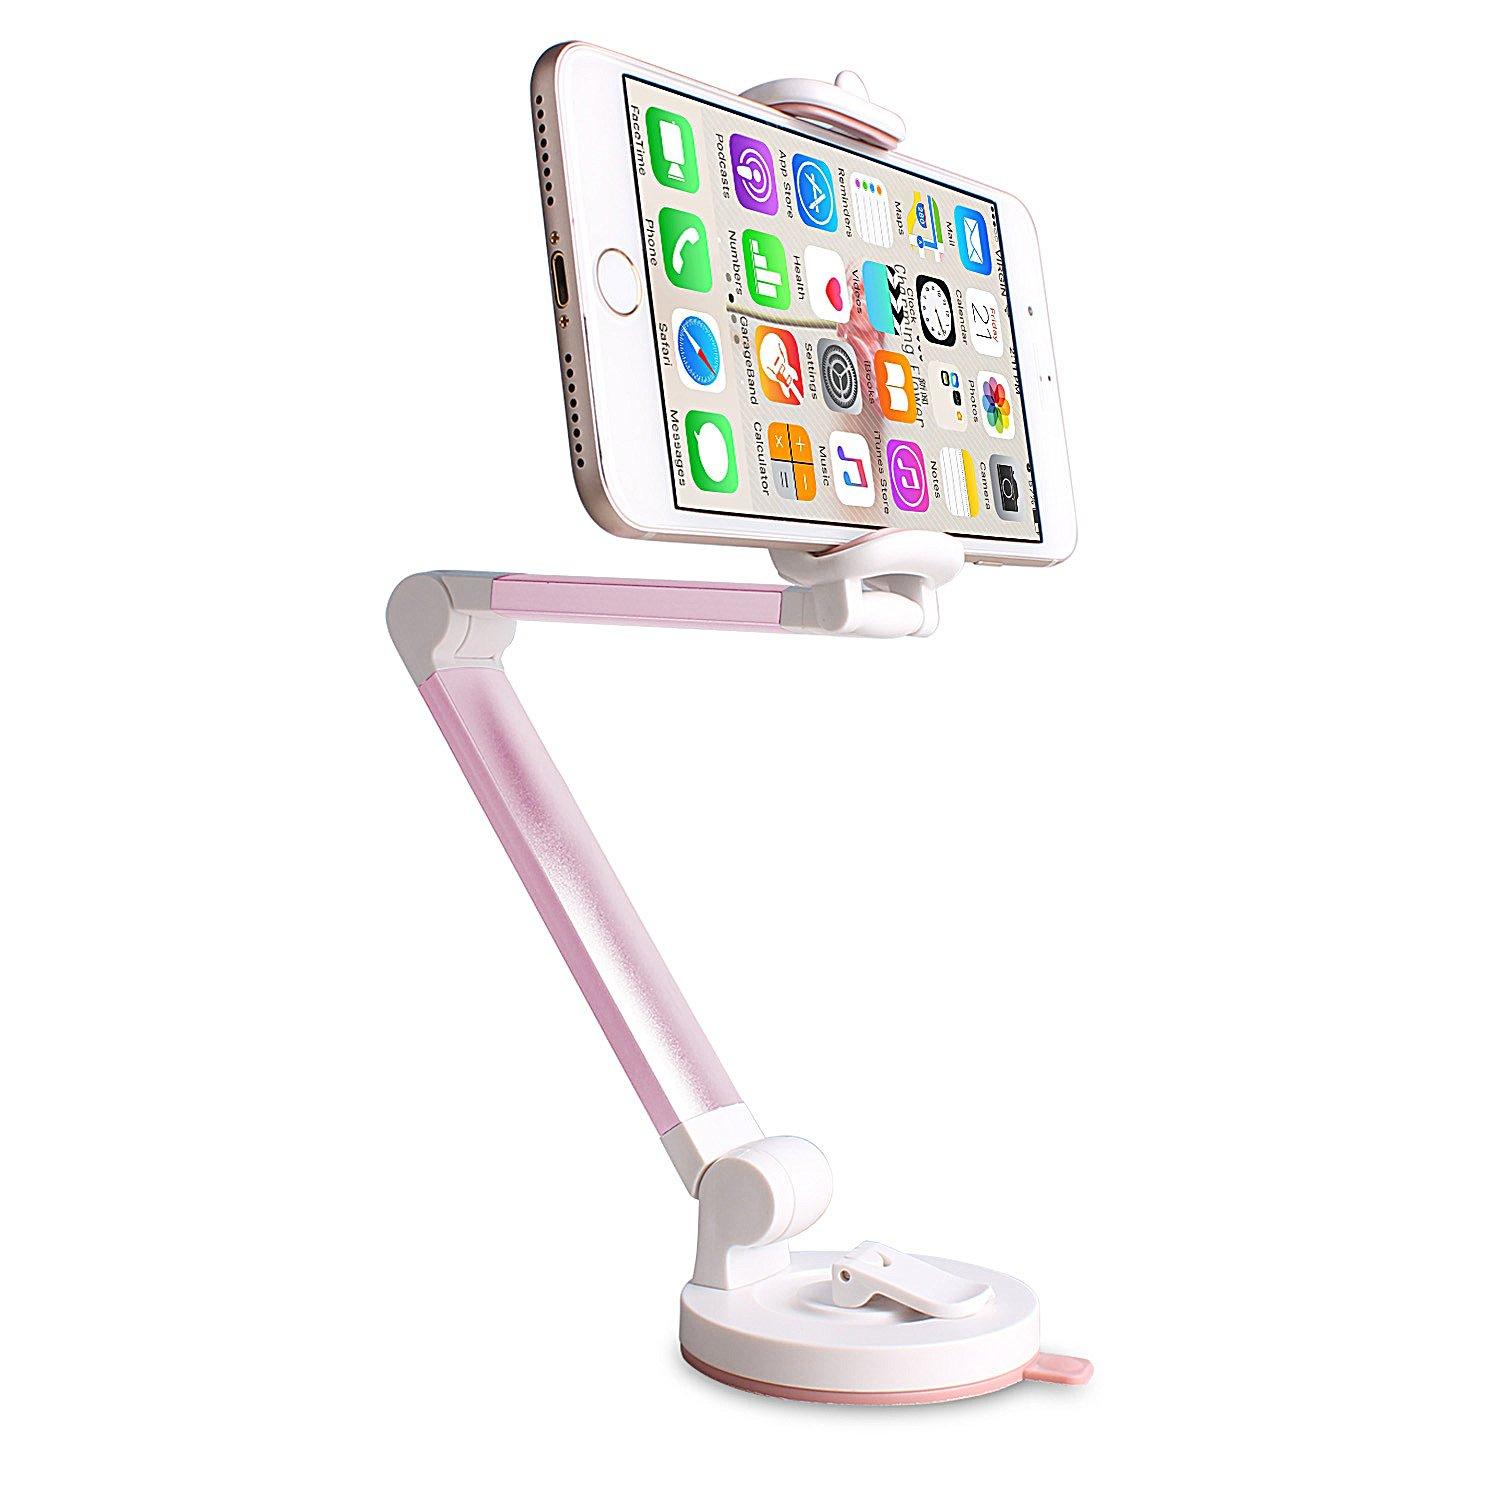 Mblai Windshield Dashboard Desktop Foldable Universal Car Mobile Phone Cradle with Strong Suction Cup for iPhone Car Phone Mount Holder Android Smart Phone holder-1 Pink